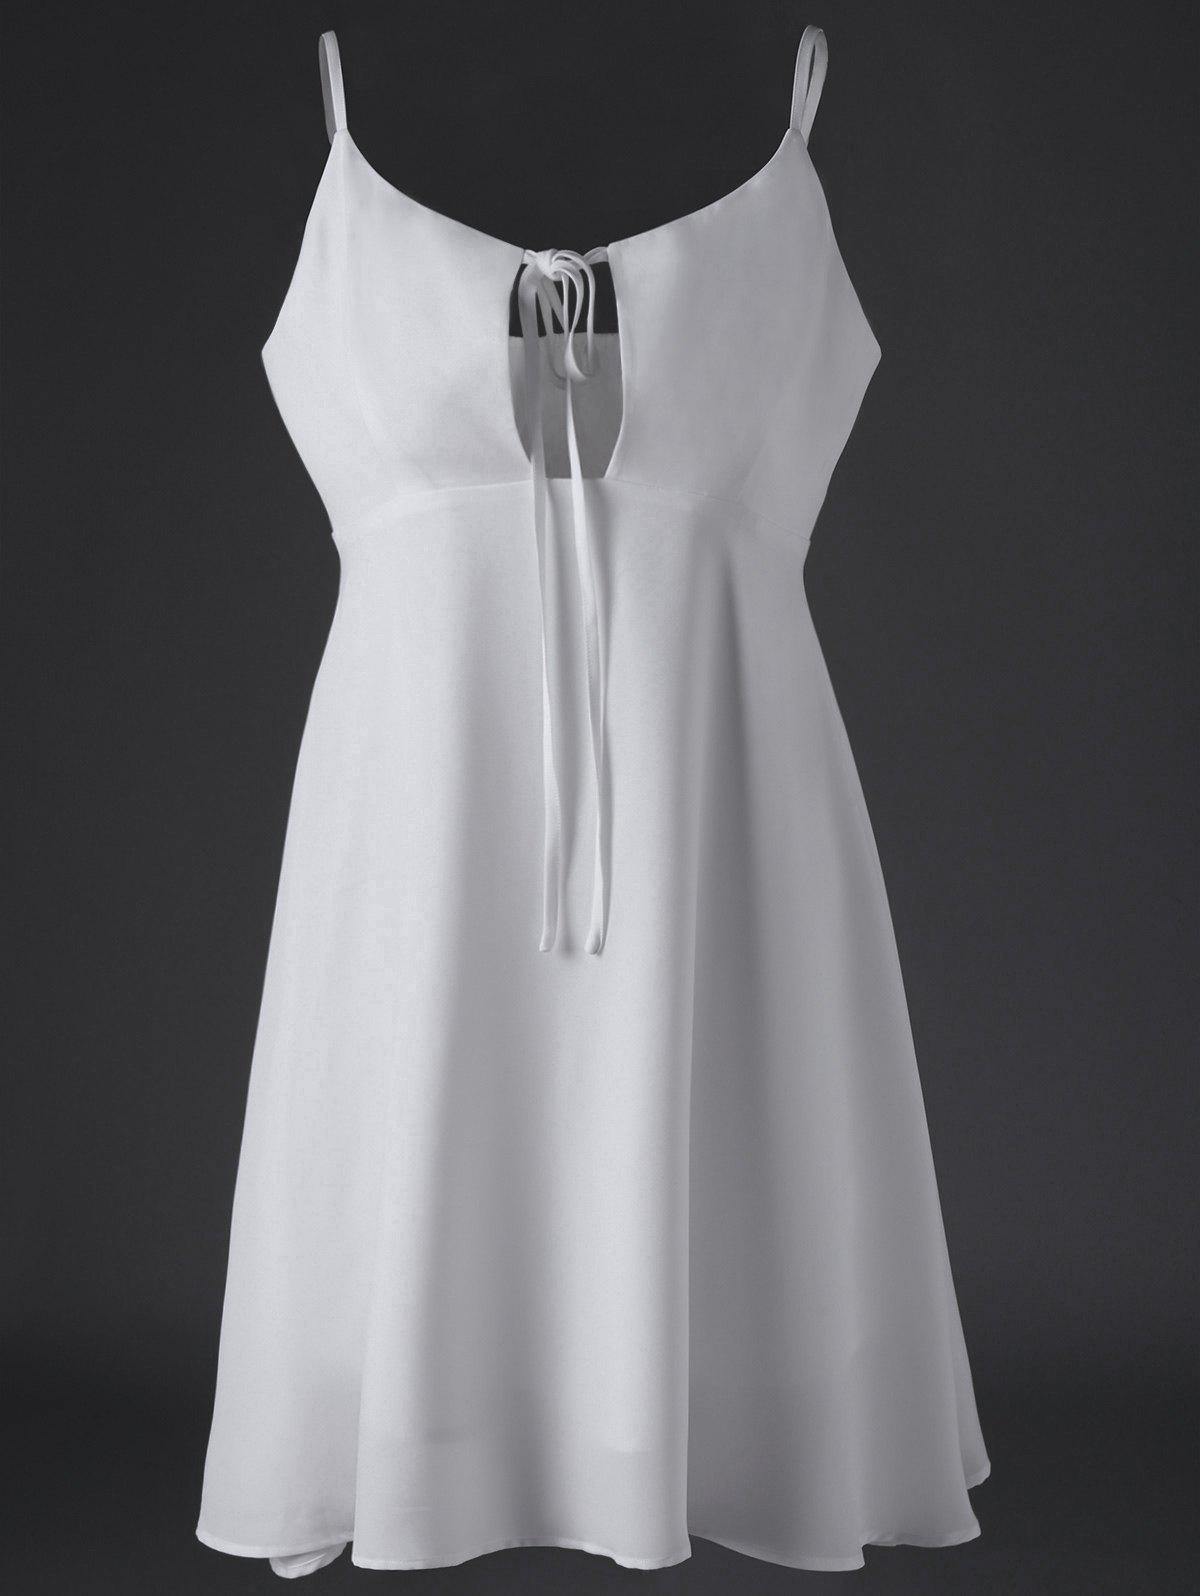 Chic Women's Spaghetti Strap White Summer Dress - WHITE L